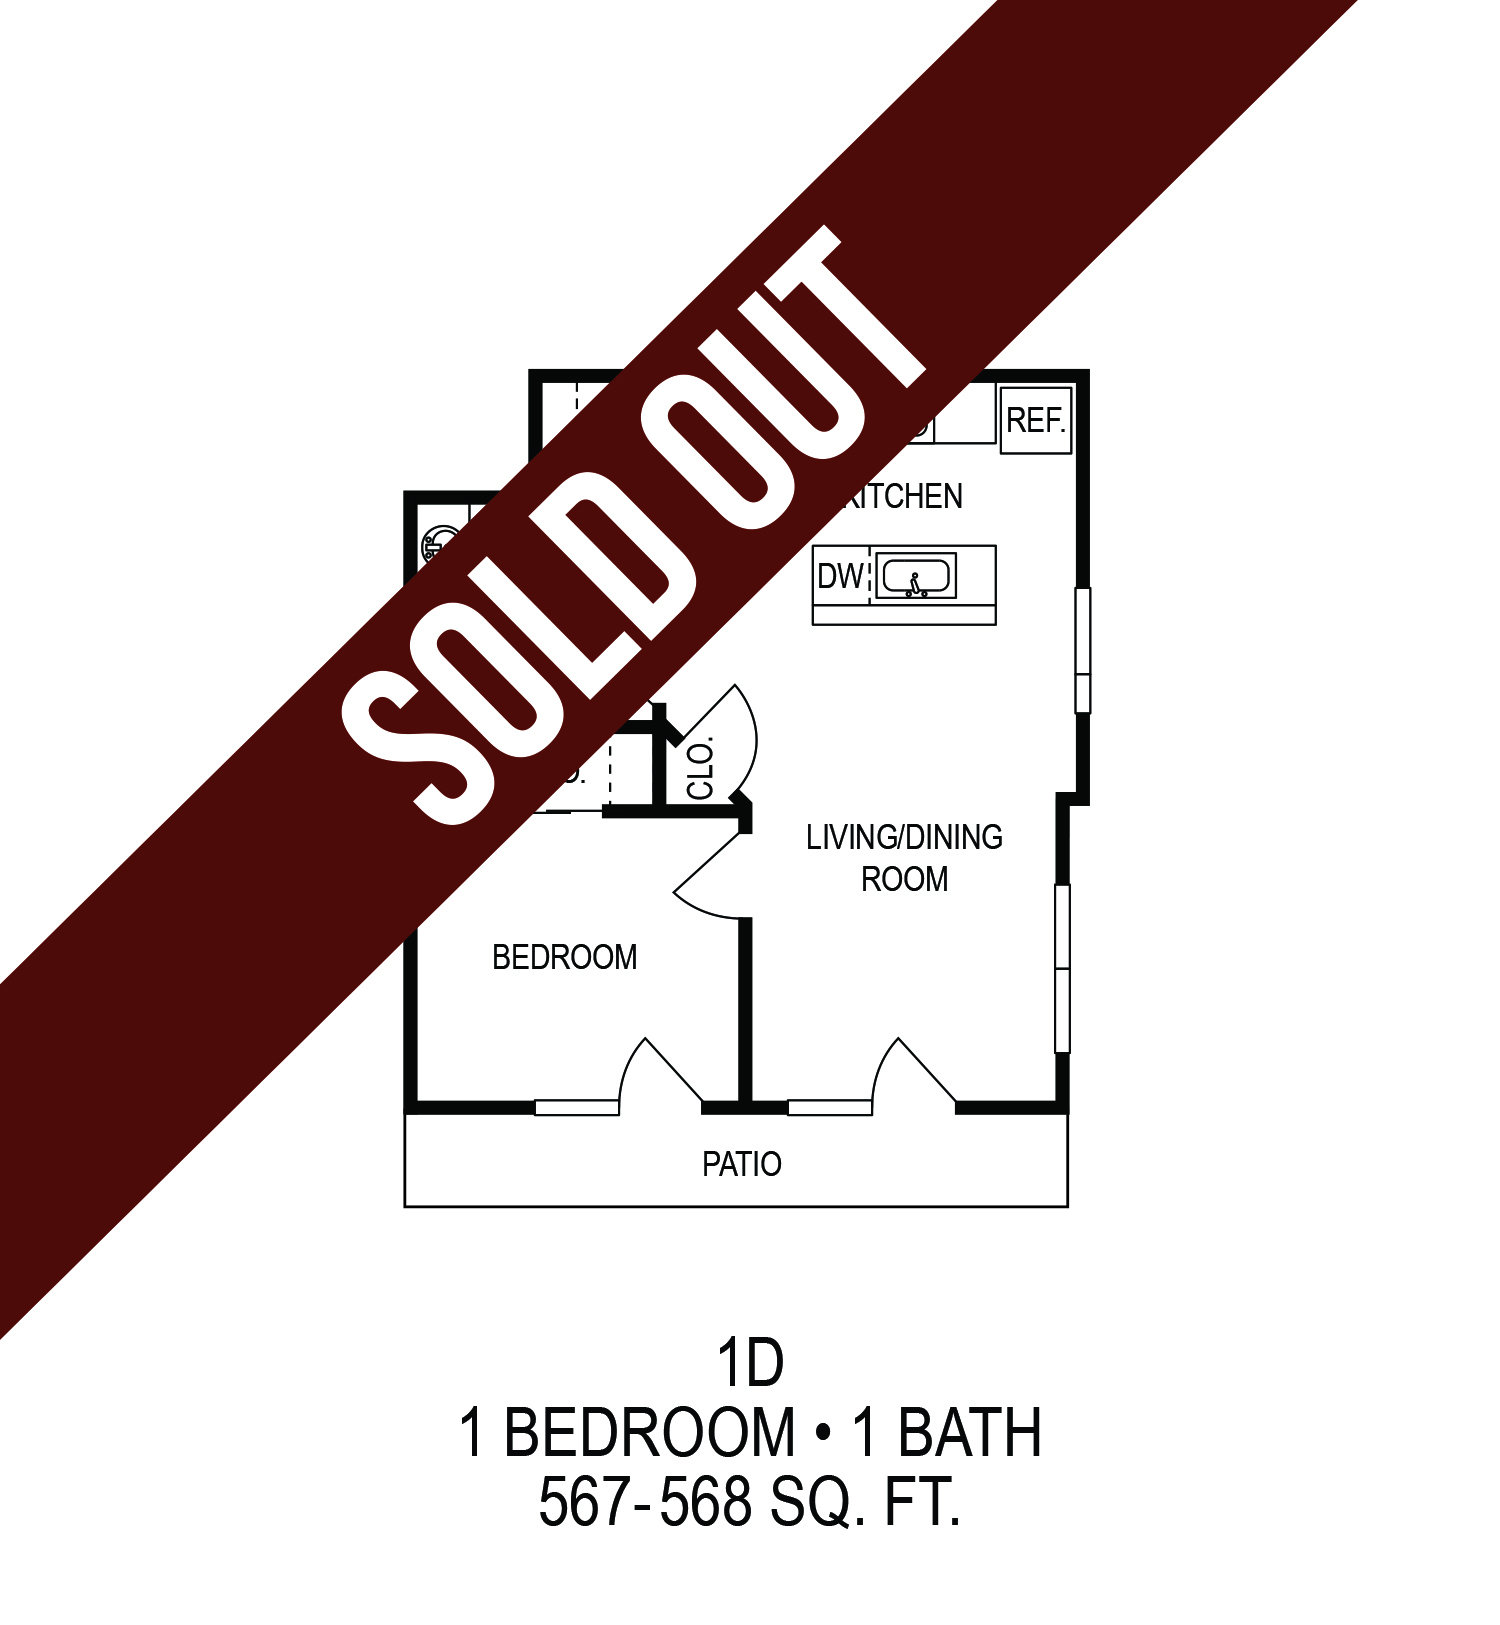 Informative Picture of One Bedroom with Sundeck (D)